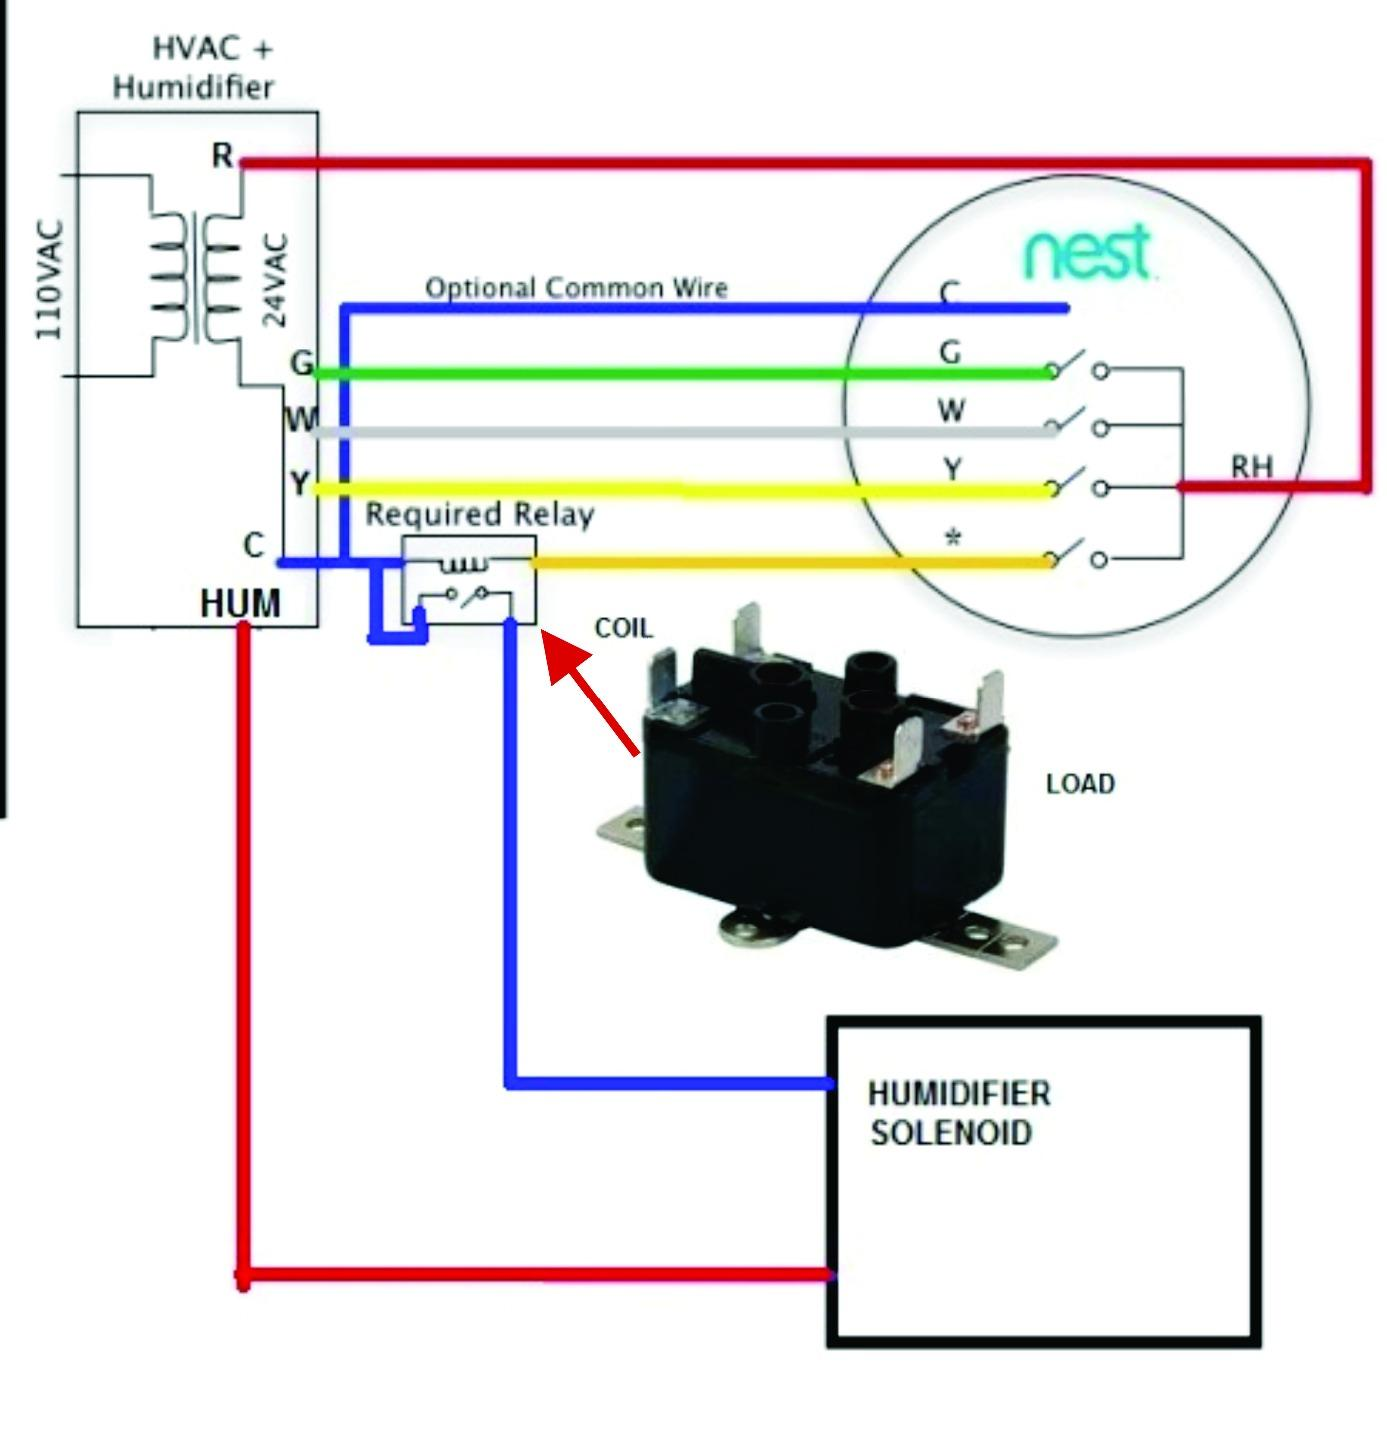 [DIAGRAM_3US]  Aprilaire 700 humidifier with Nest thermostat | Terry Love Plumbing Advice  & Remodel DIY & Professional Forum | Aprilaire Humidistat Wiring Diagrams |  | Terry Love Plumbing